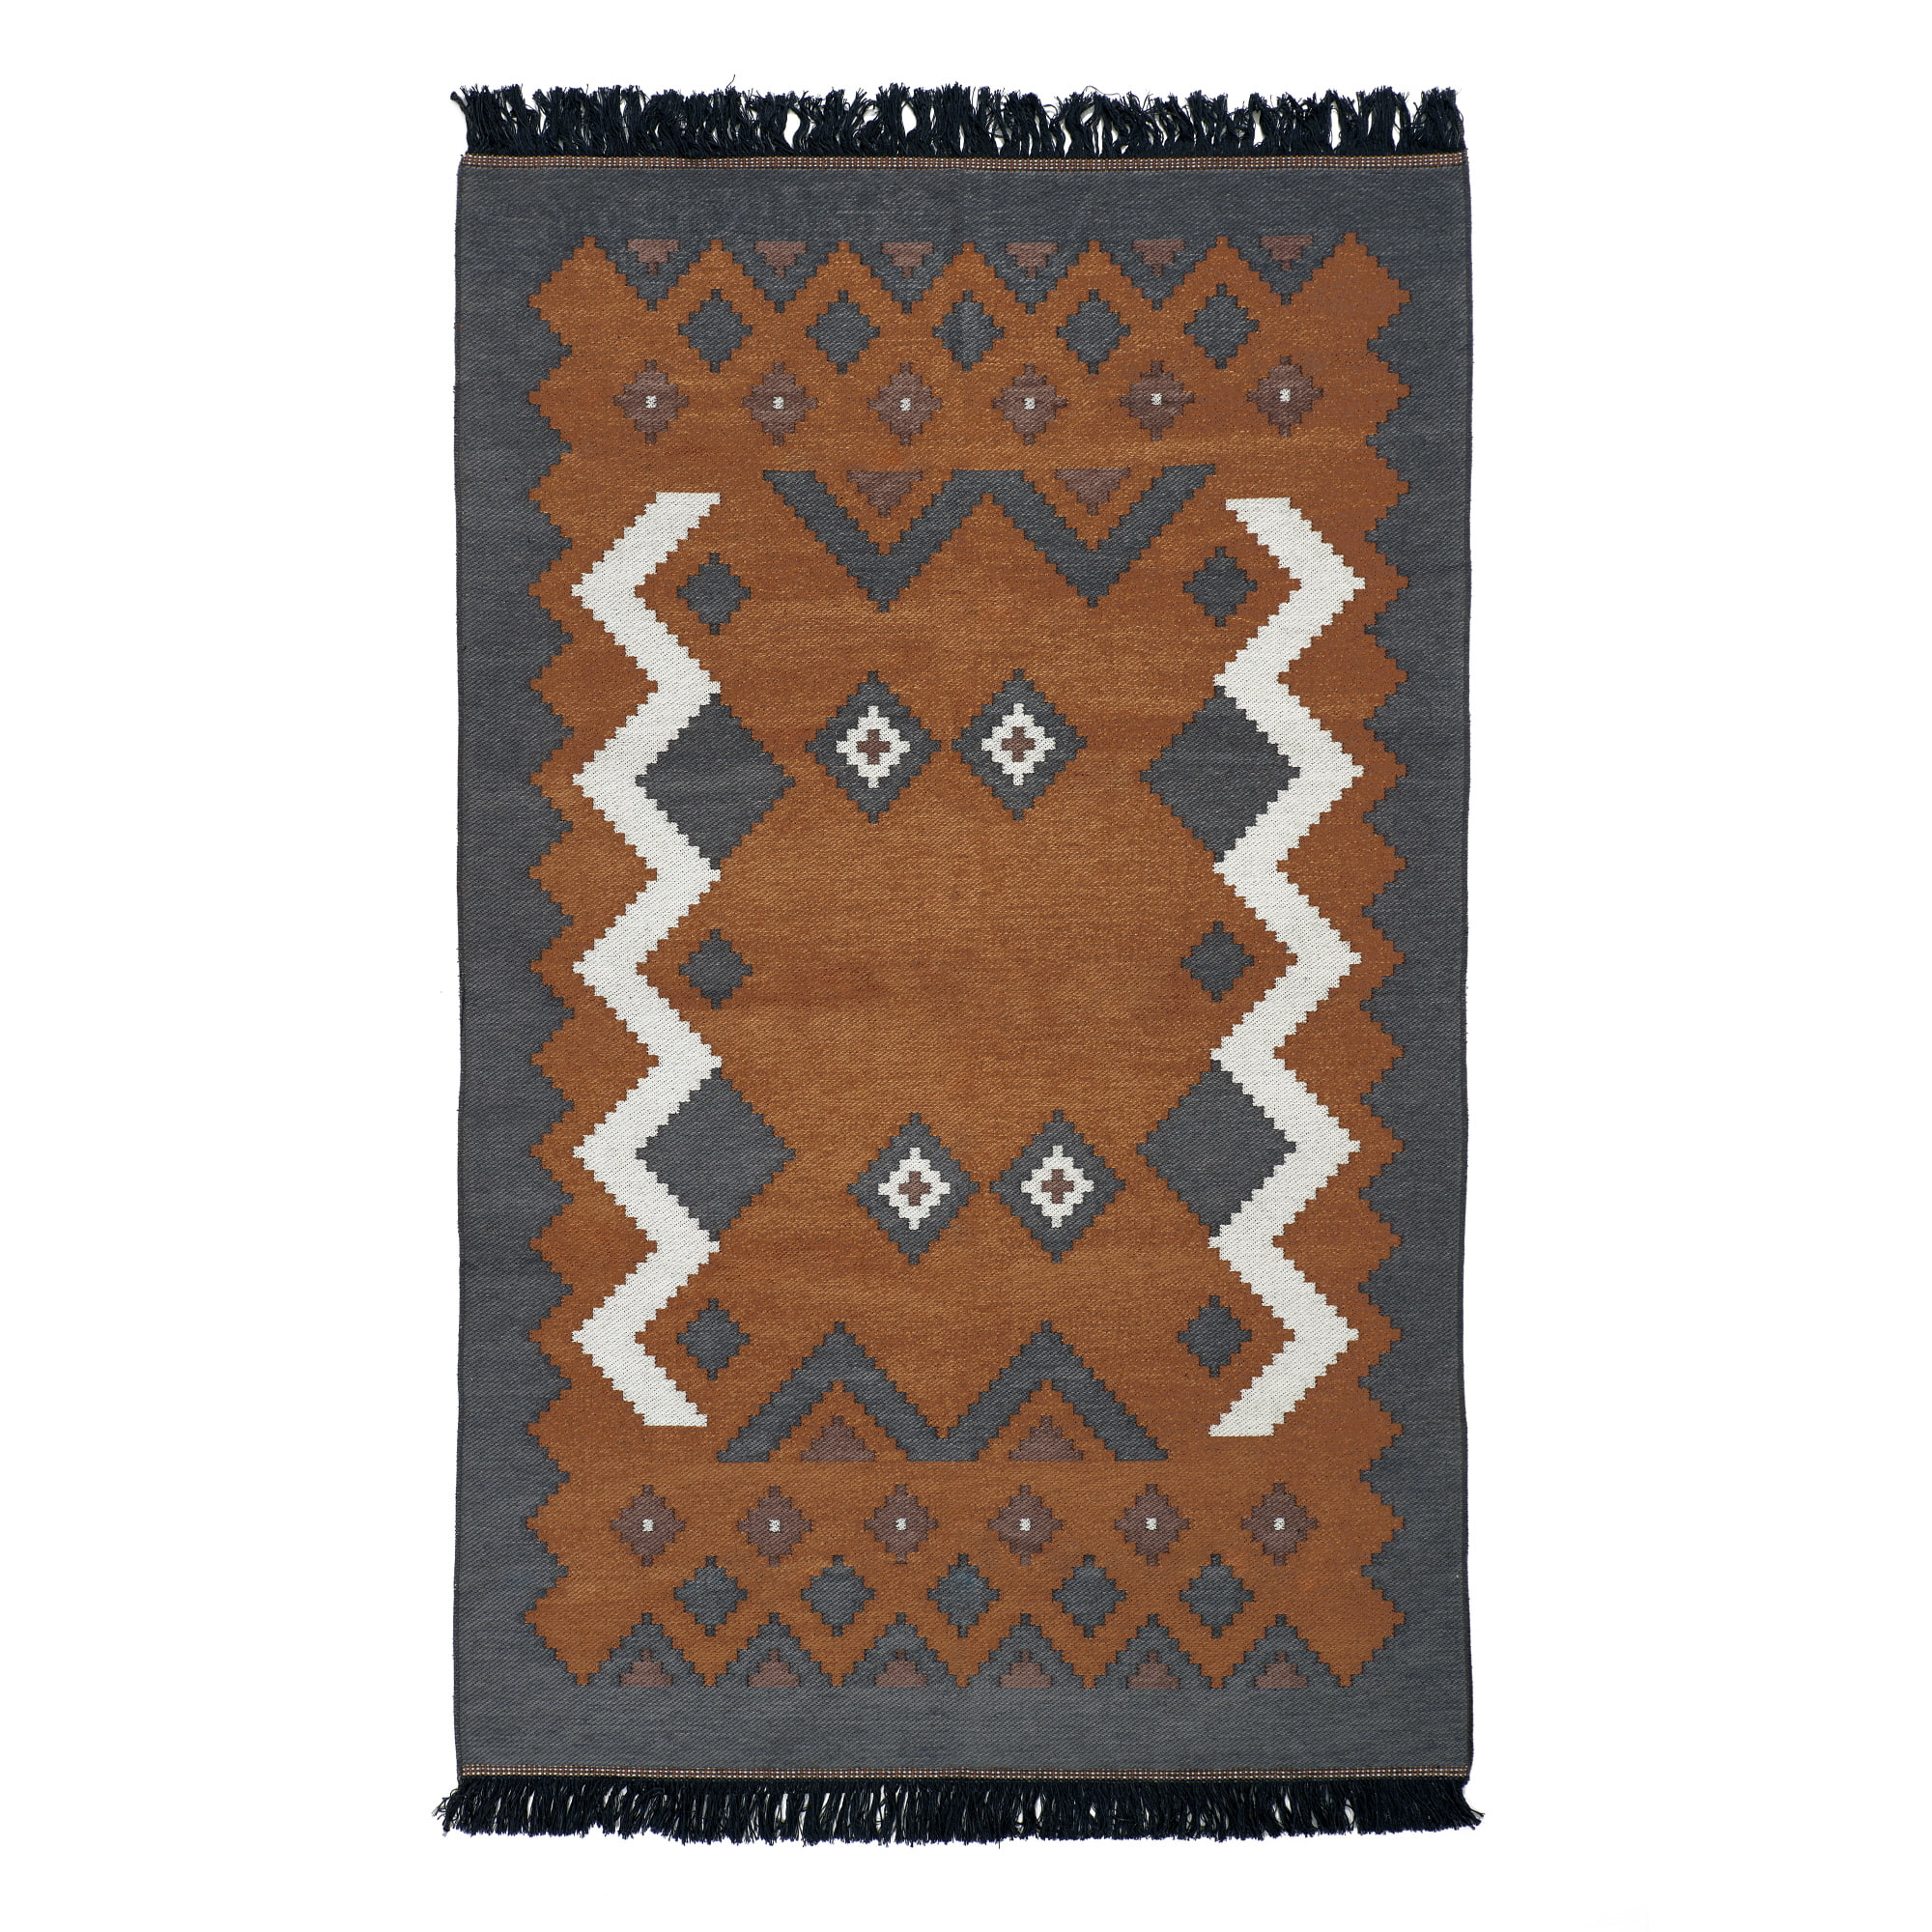 KILIM RUG(L) - brown gray